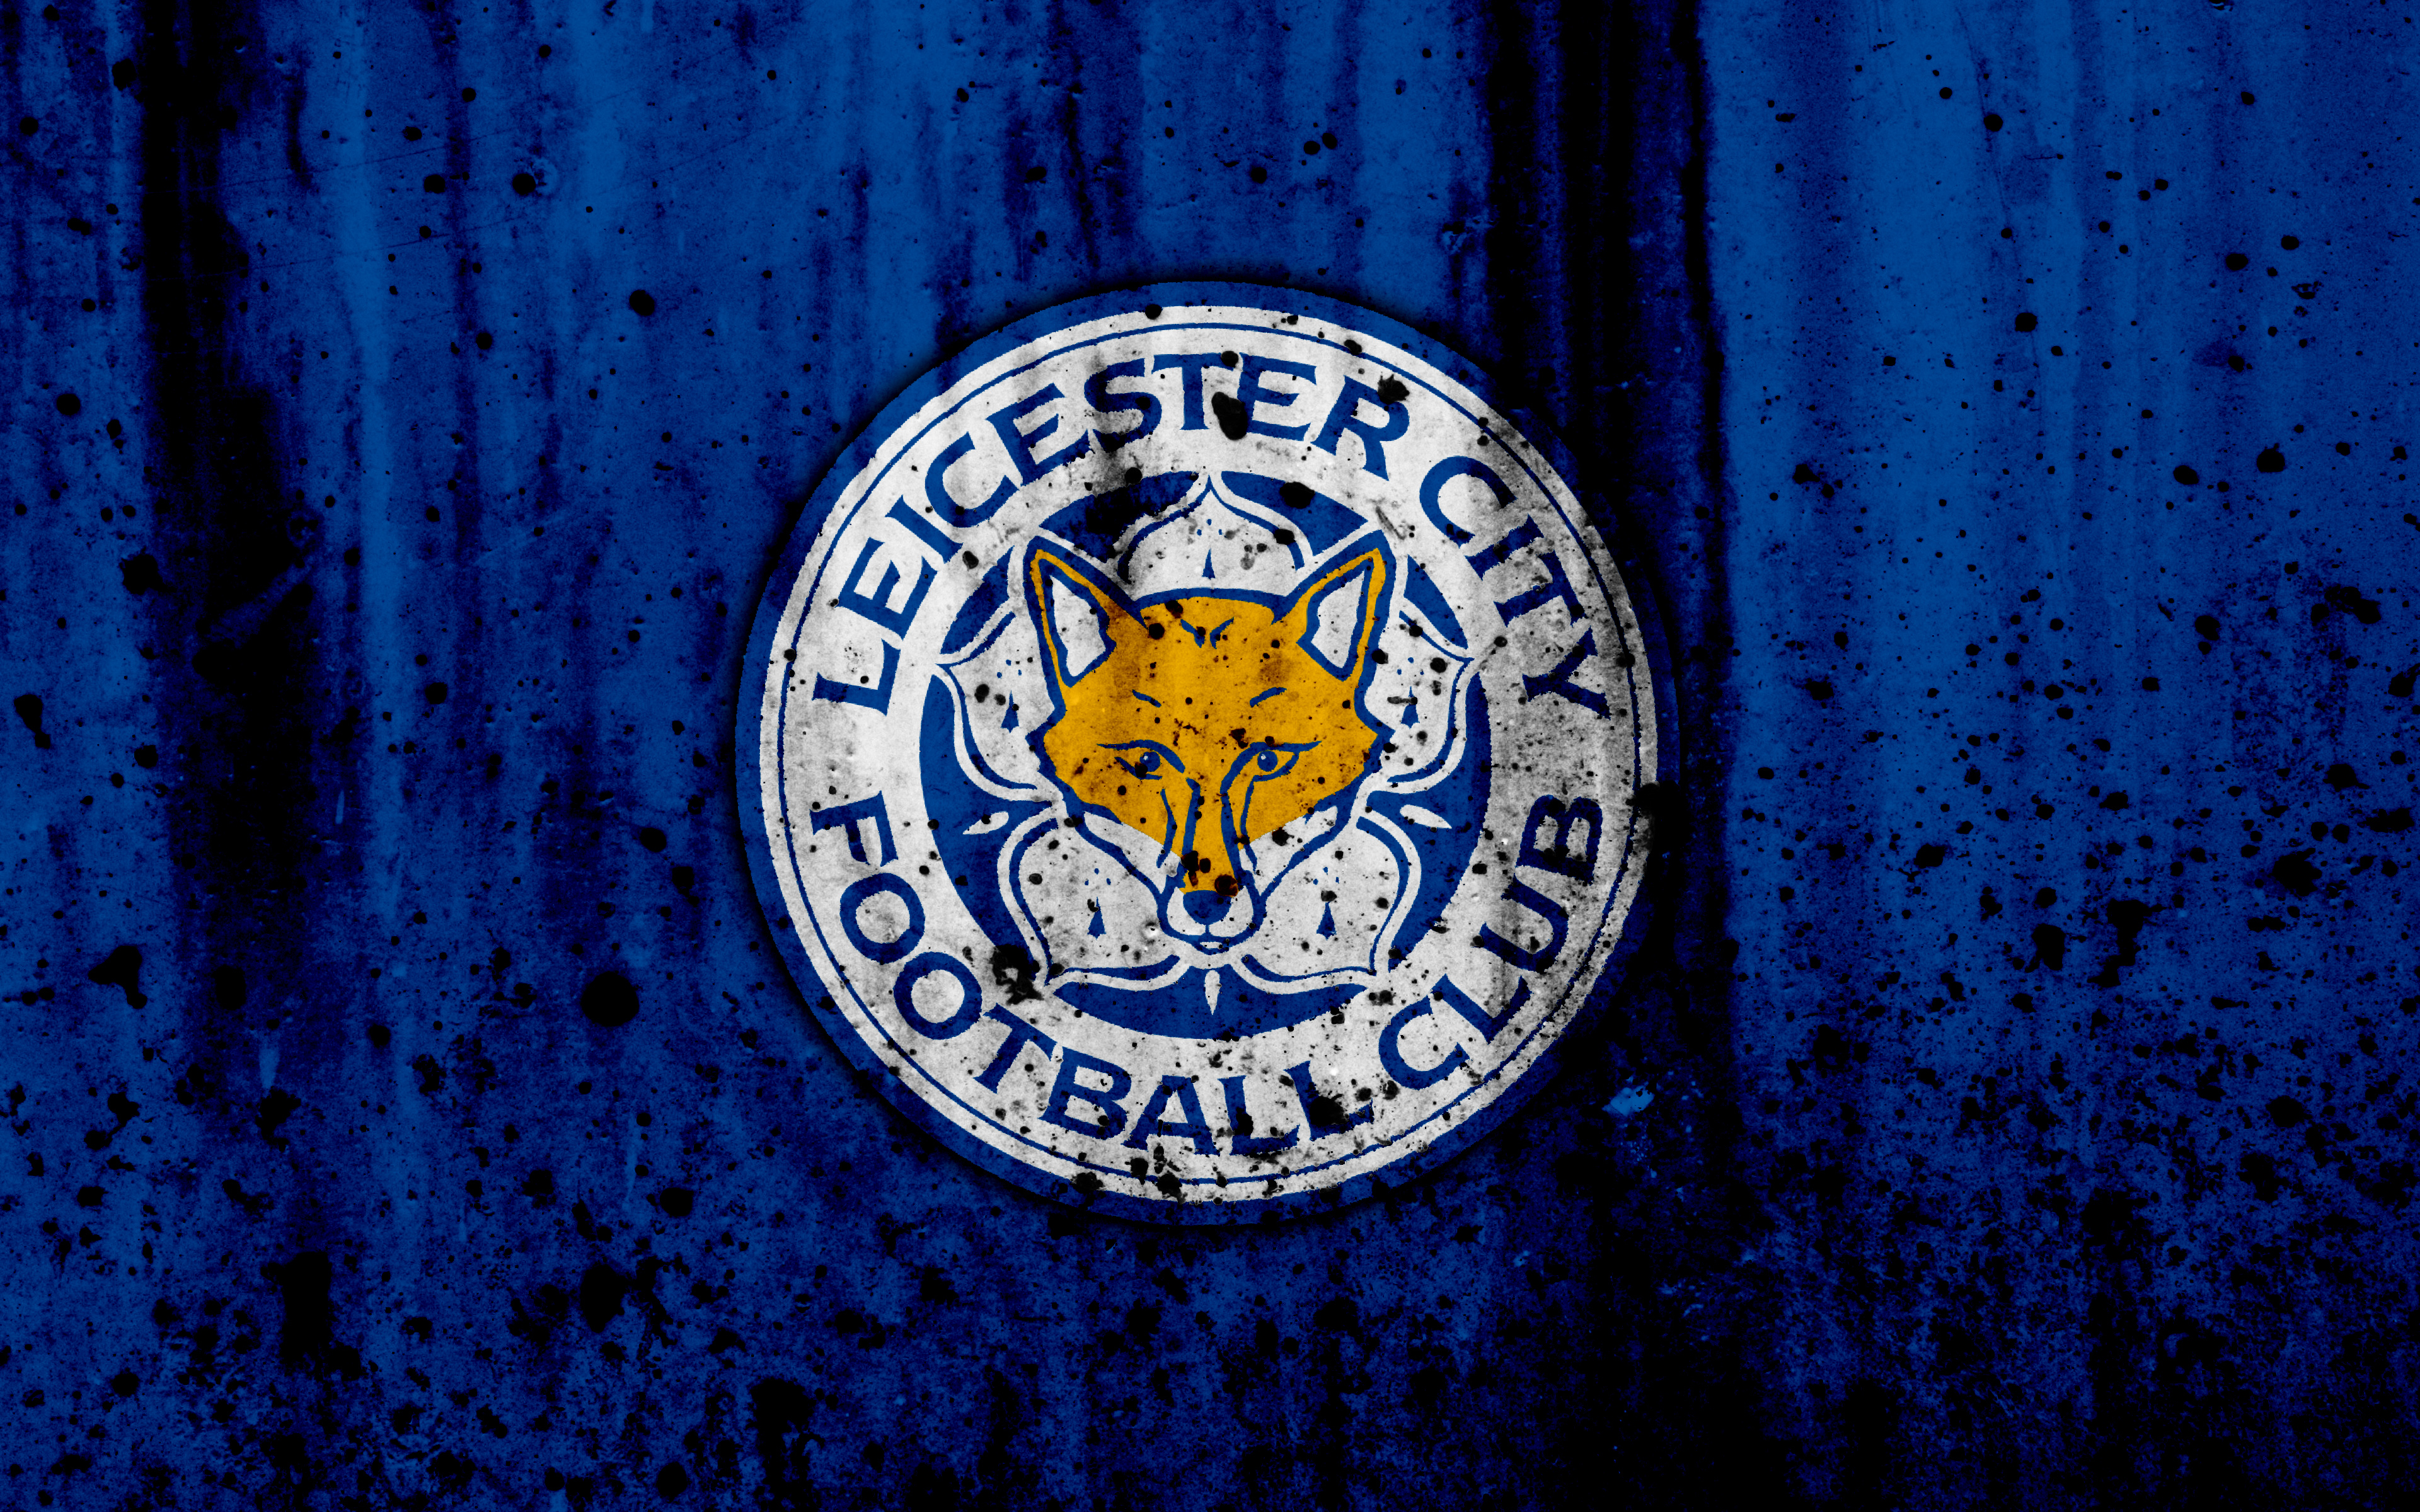 Leicester City F.C. 4k Ultra HD Wallpaper | Background ...